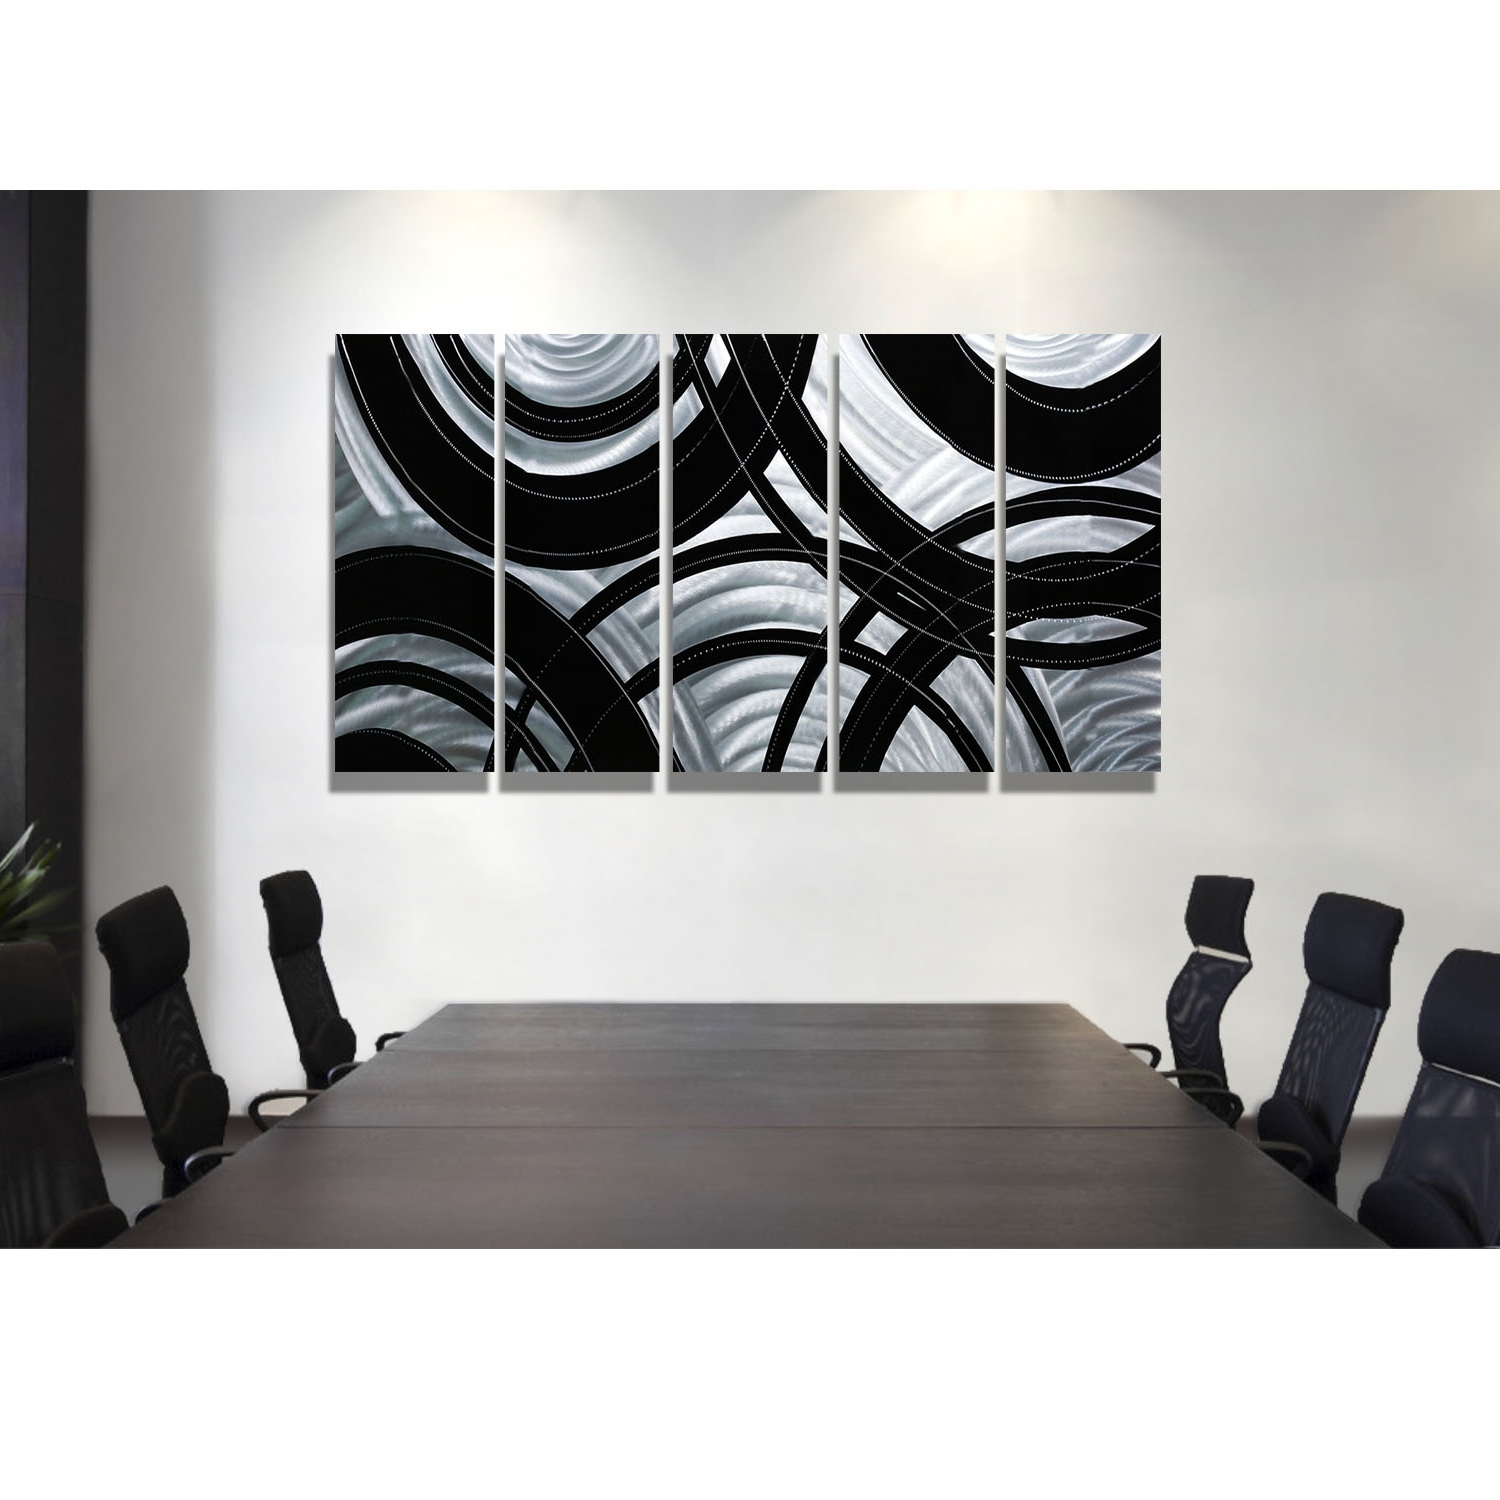 2017 Synergy – Black And Silver Metal Wall Art – 5 Panel Wall Décor Pertaining To Silver Wall Art (View 2 of 20)